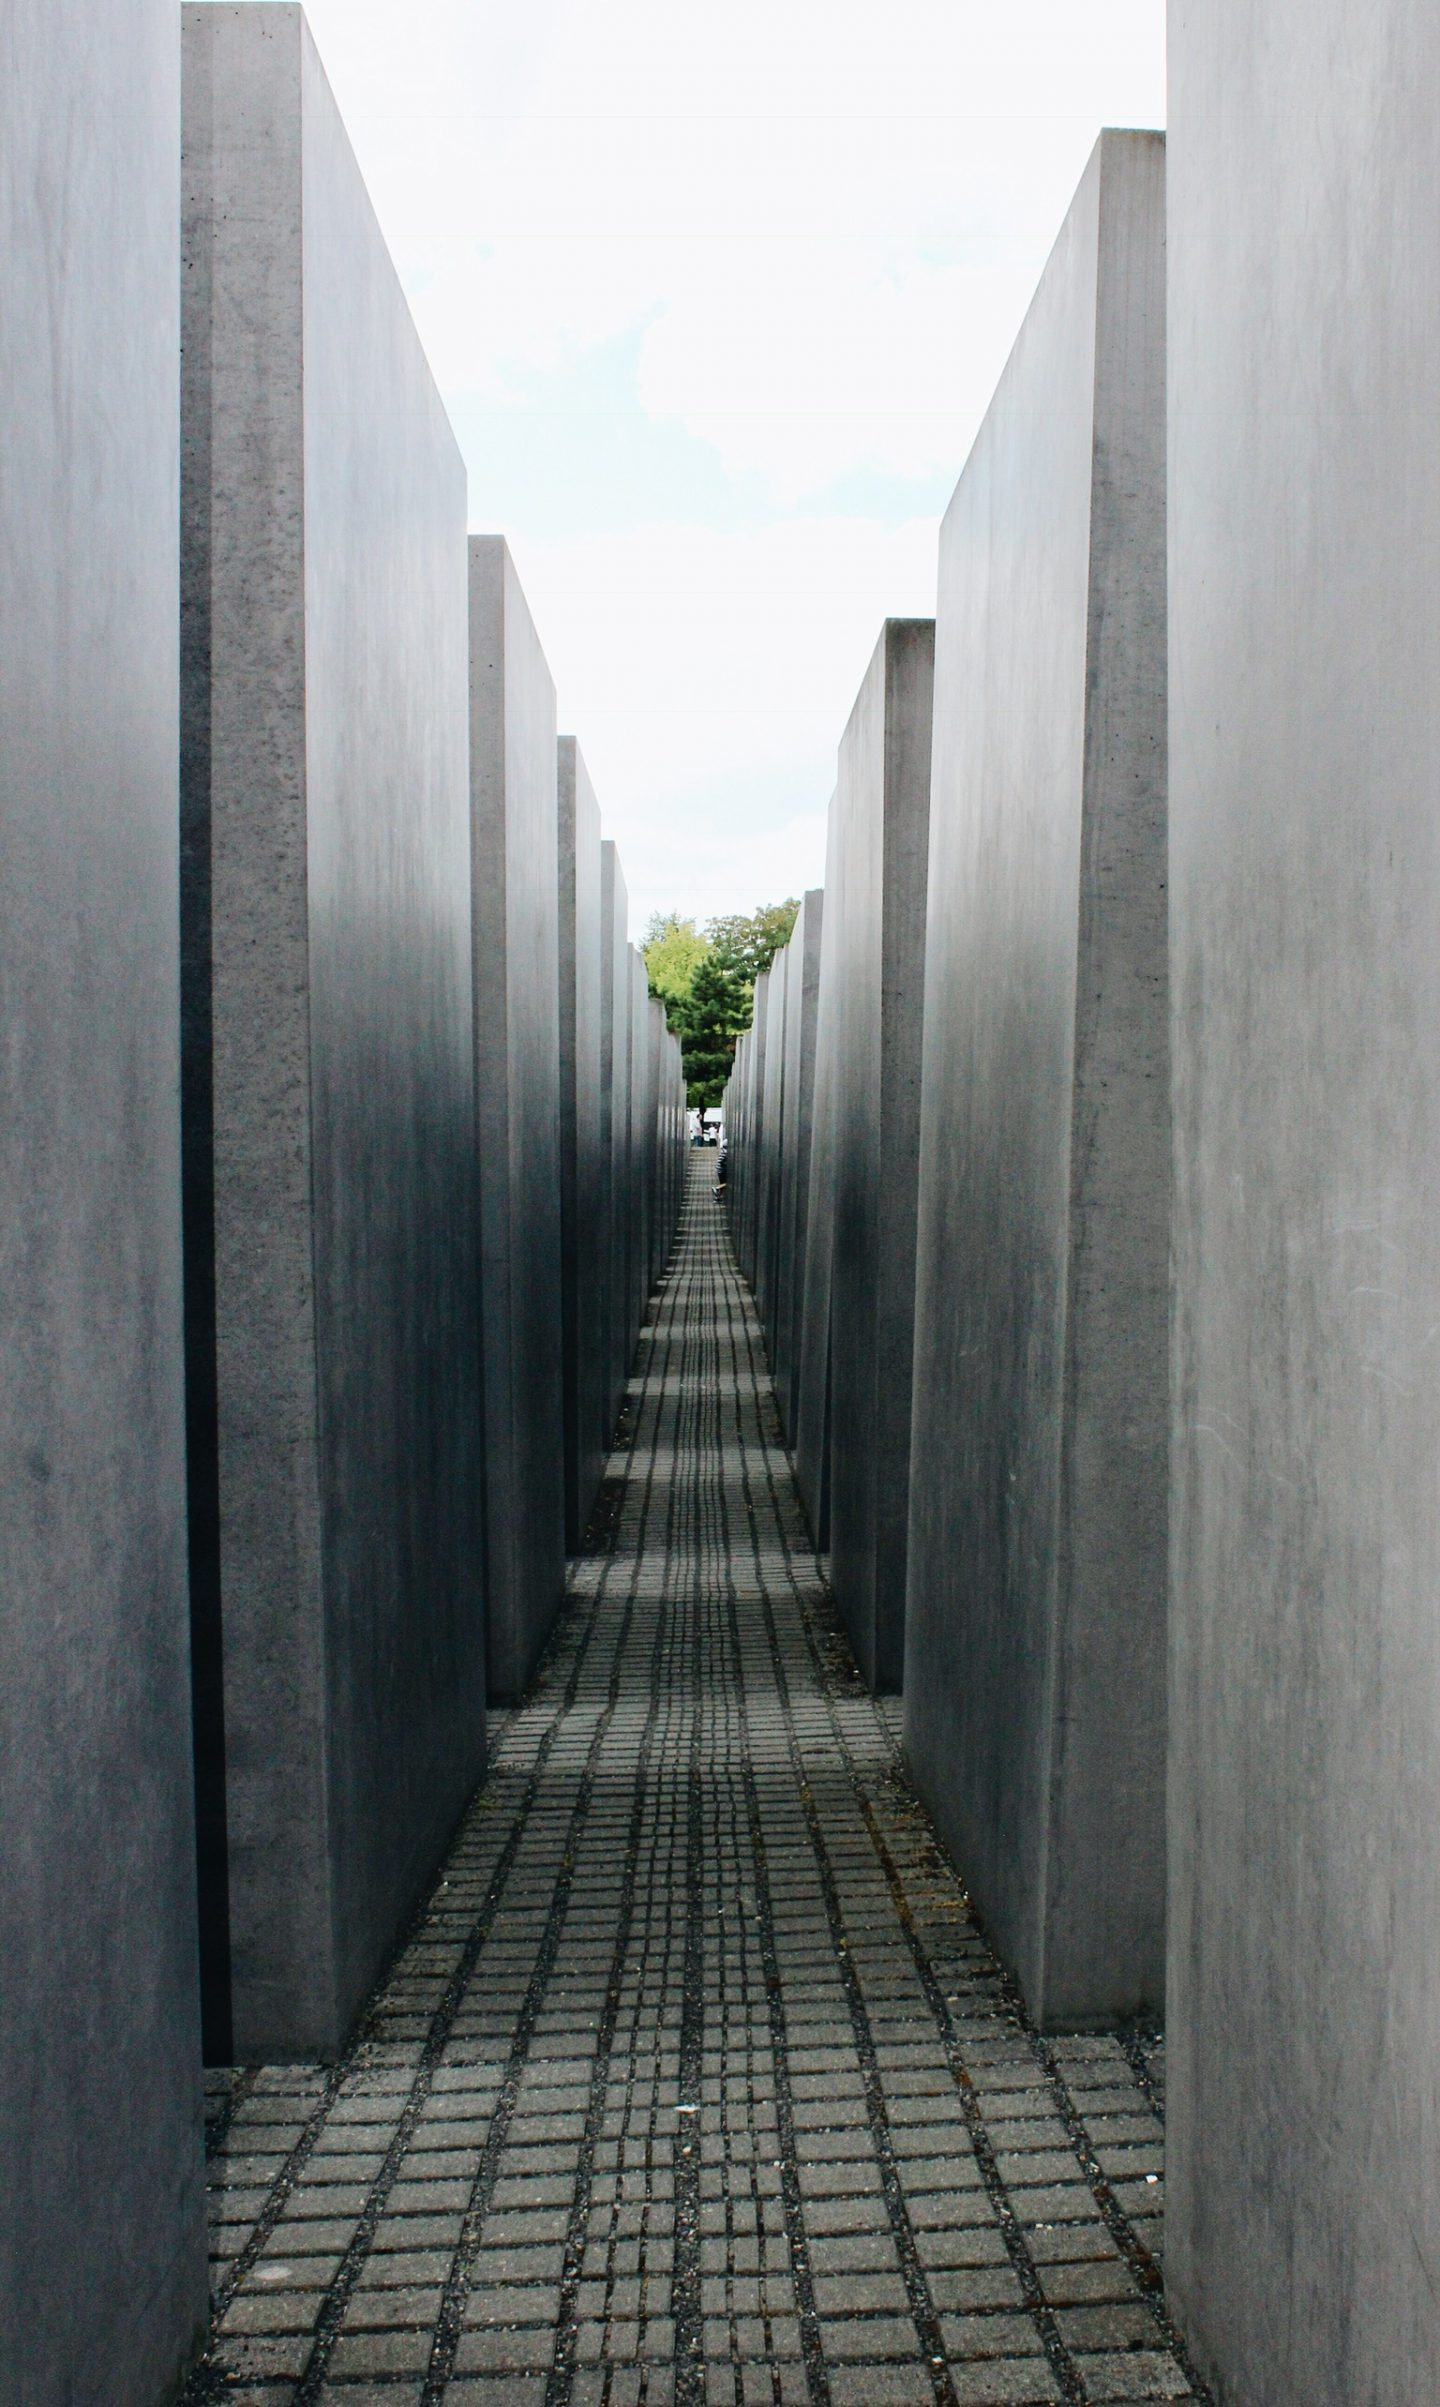 Memorial of the Murdered Jews of Europe in Berlin, Germany.